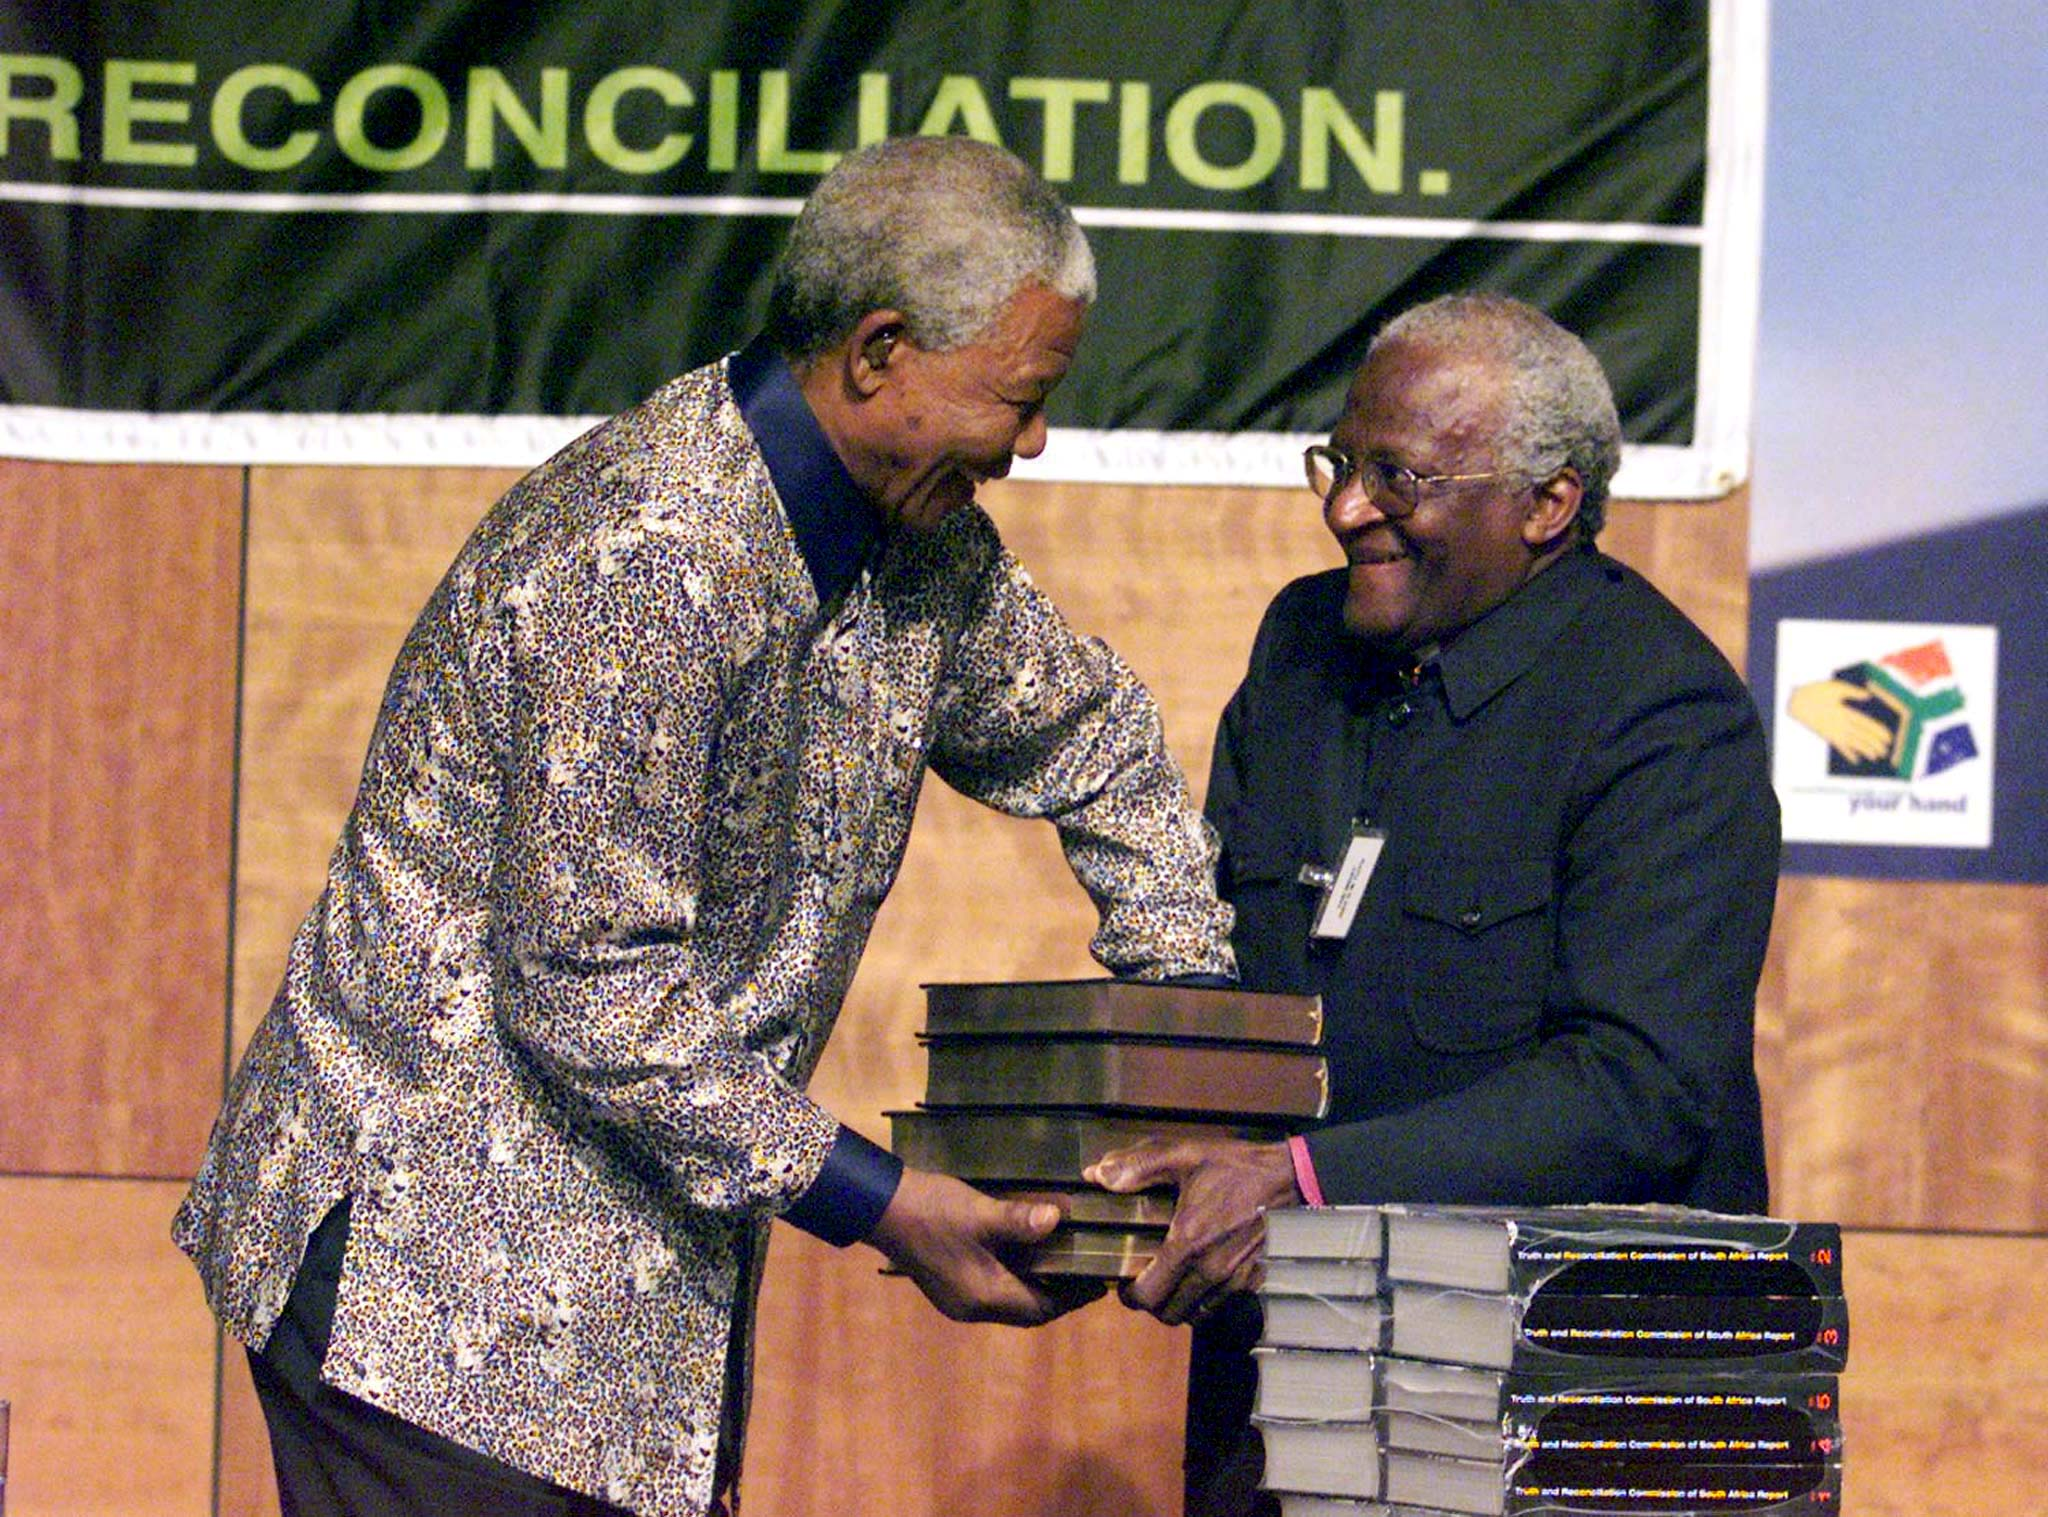 Chairman of the TRC (Truth and Reconciliation Commission) Archbishop Desmond Tutu (R) hands over the TRC report to South Africa's President Nelson Mandela at the State theater Building in Pretoria October 29.